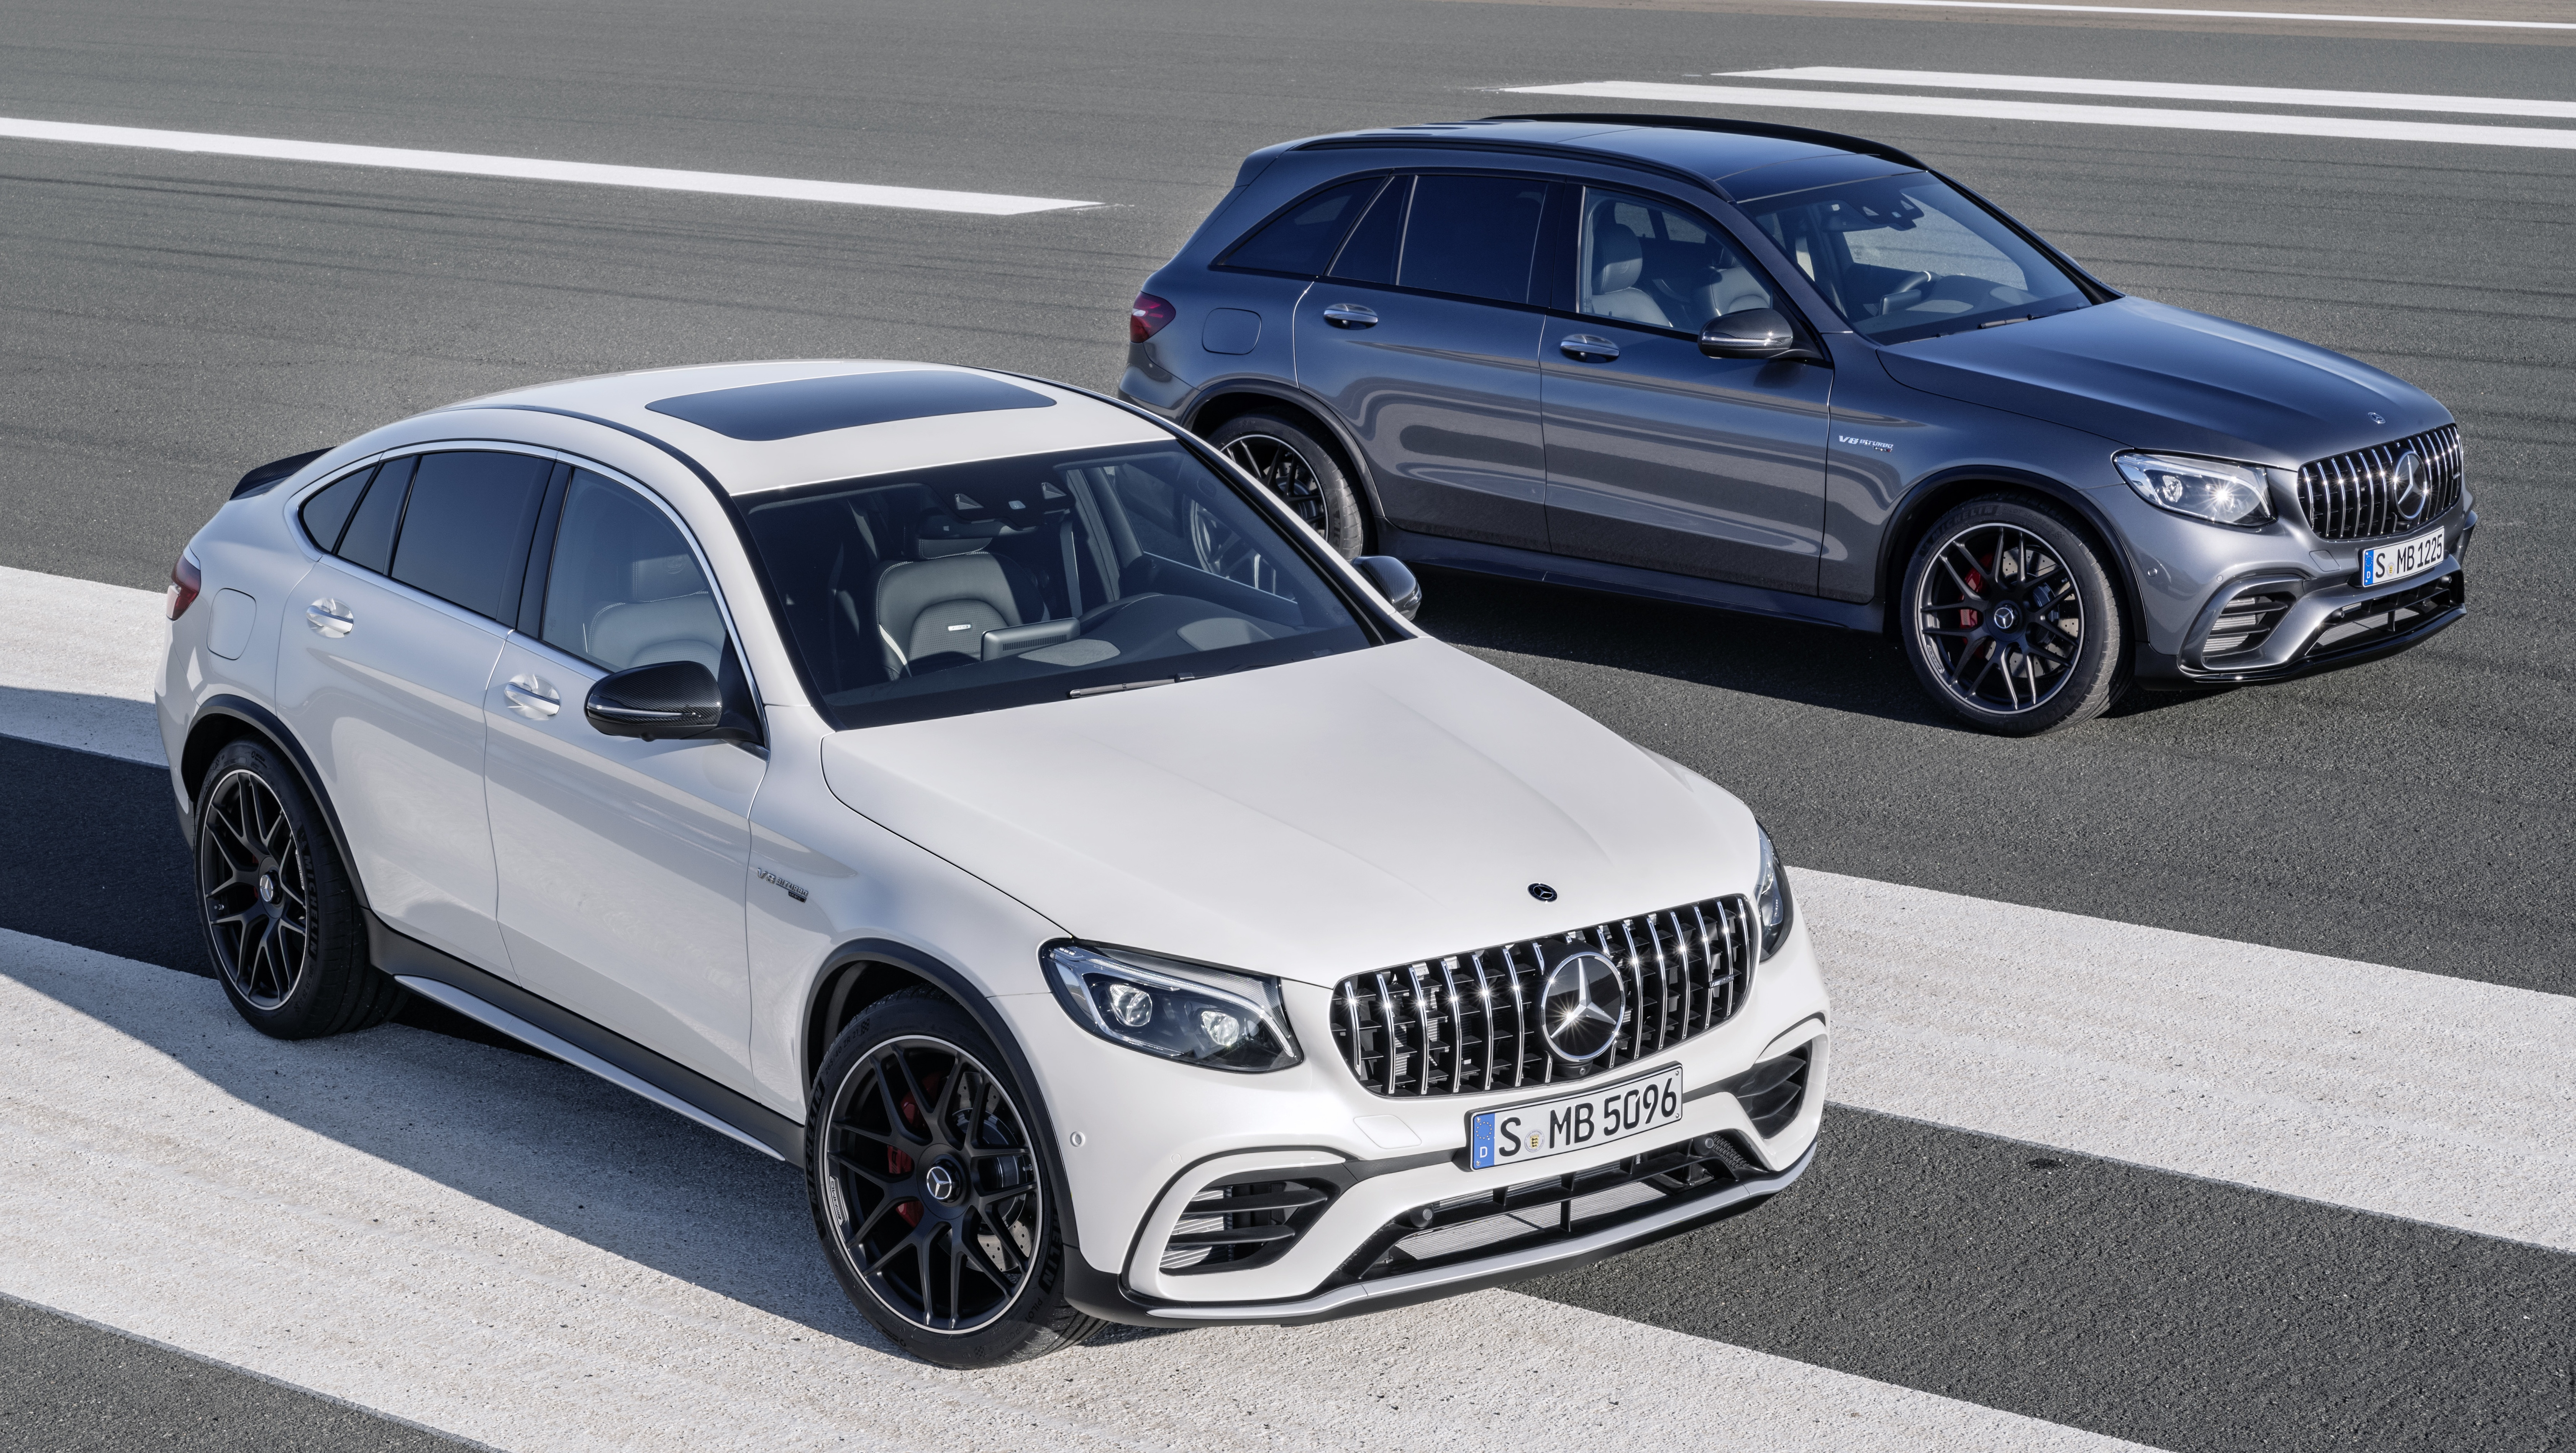 S 63 Amg 2017 >> Mercedes-AMG GLC63 4MATIC+ and GLC63 4MATIC+ Coupe unveiled – 4.0 litre twin-turbo V8, 510 hp ...